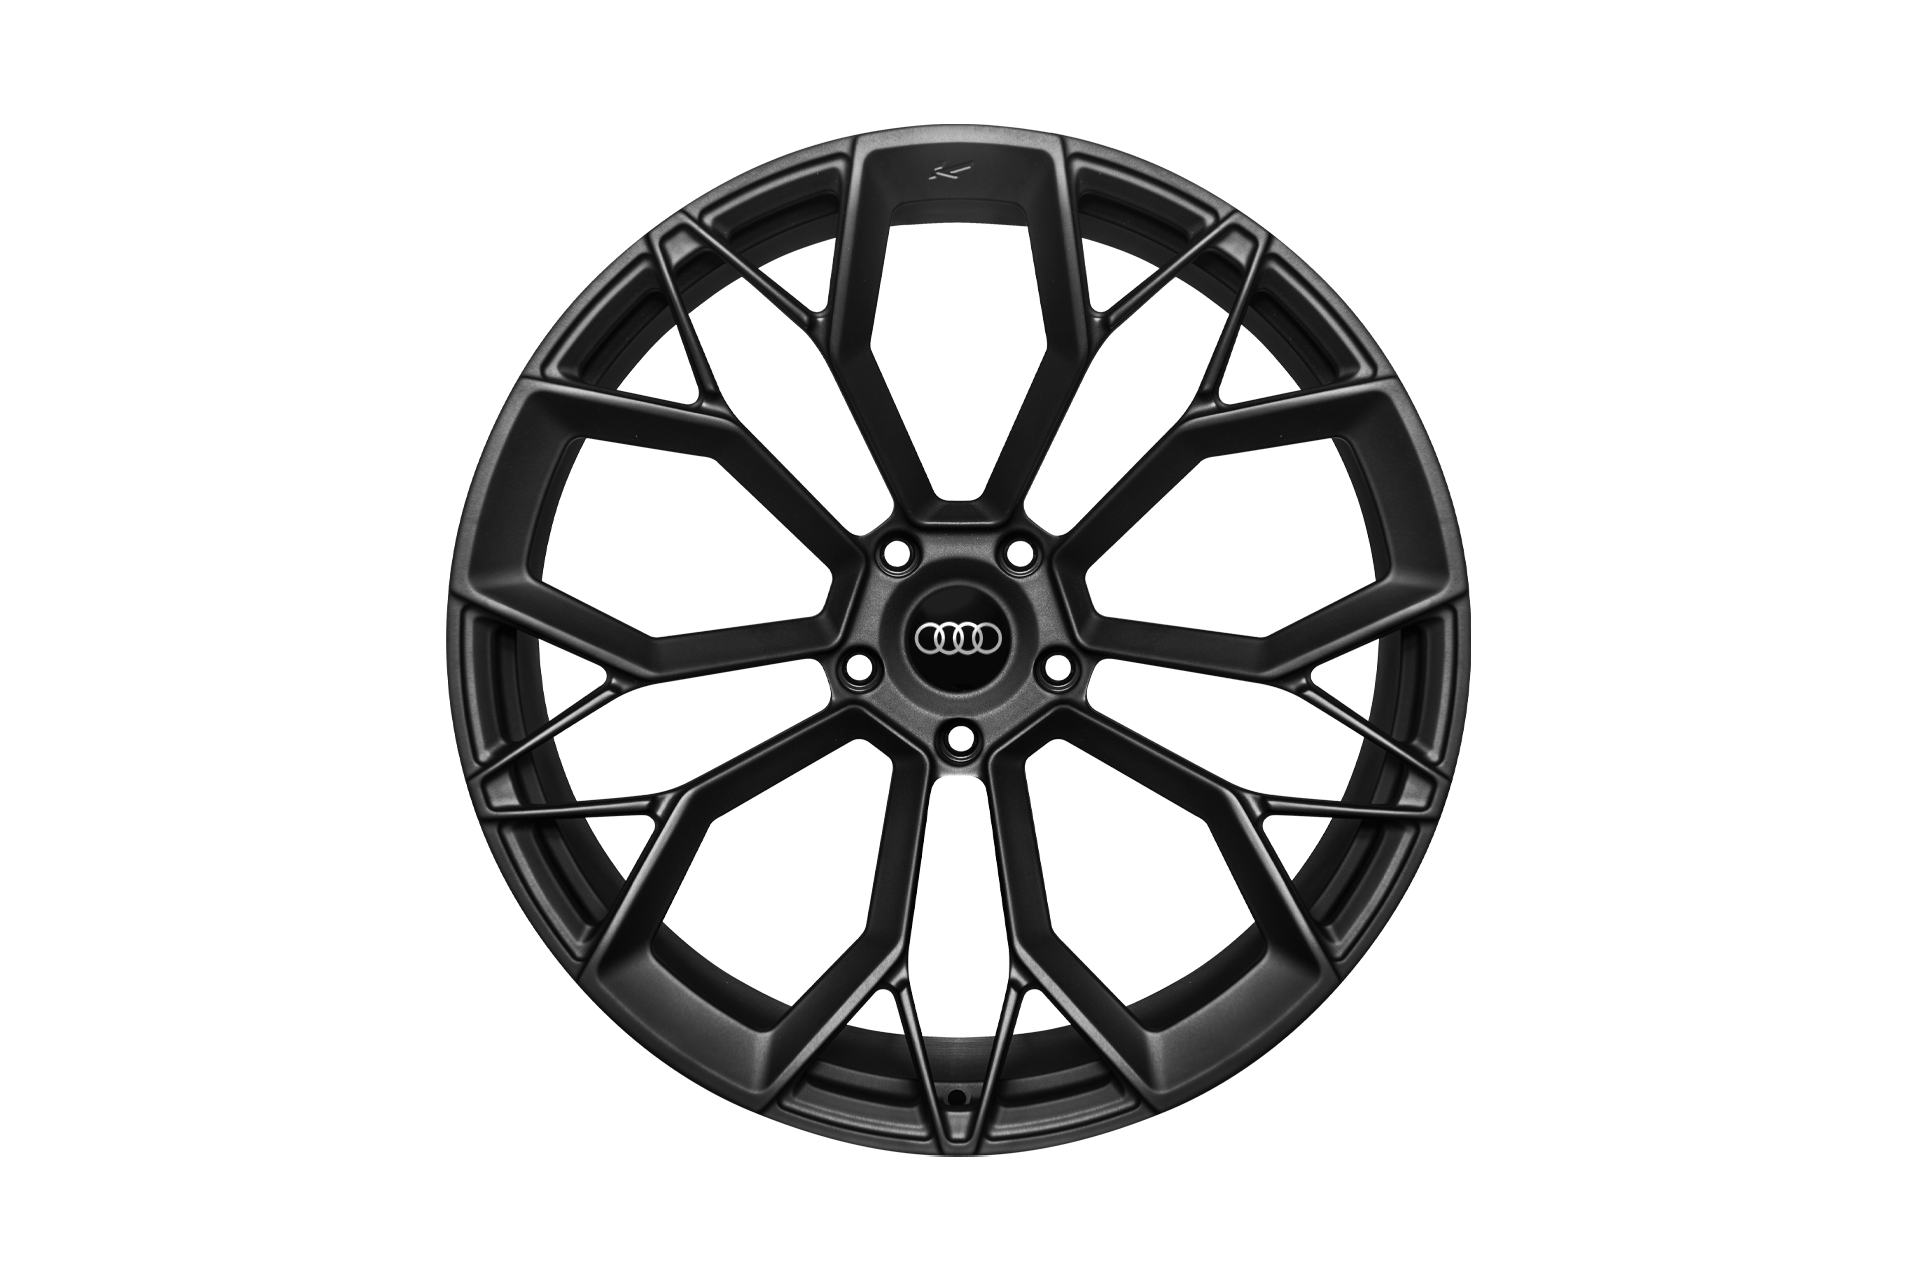 Audi SQ7 Type 53 RS-Forged Light Alloy Wheels - Project Kahn